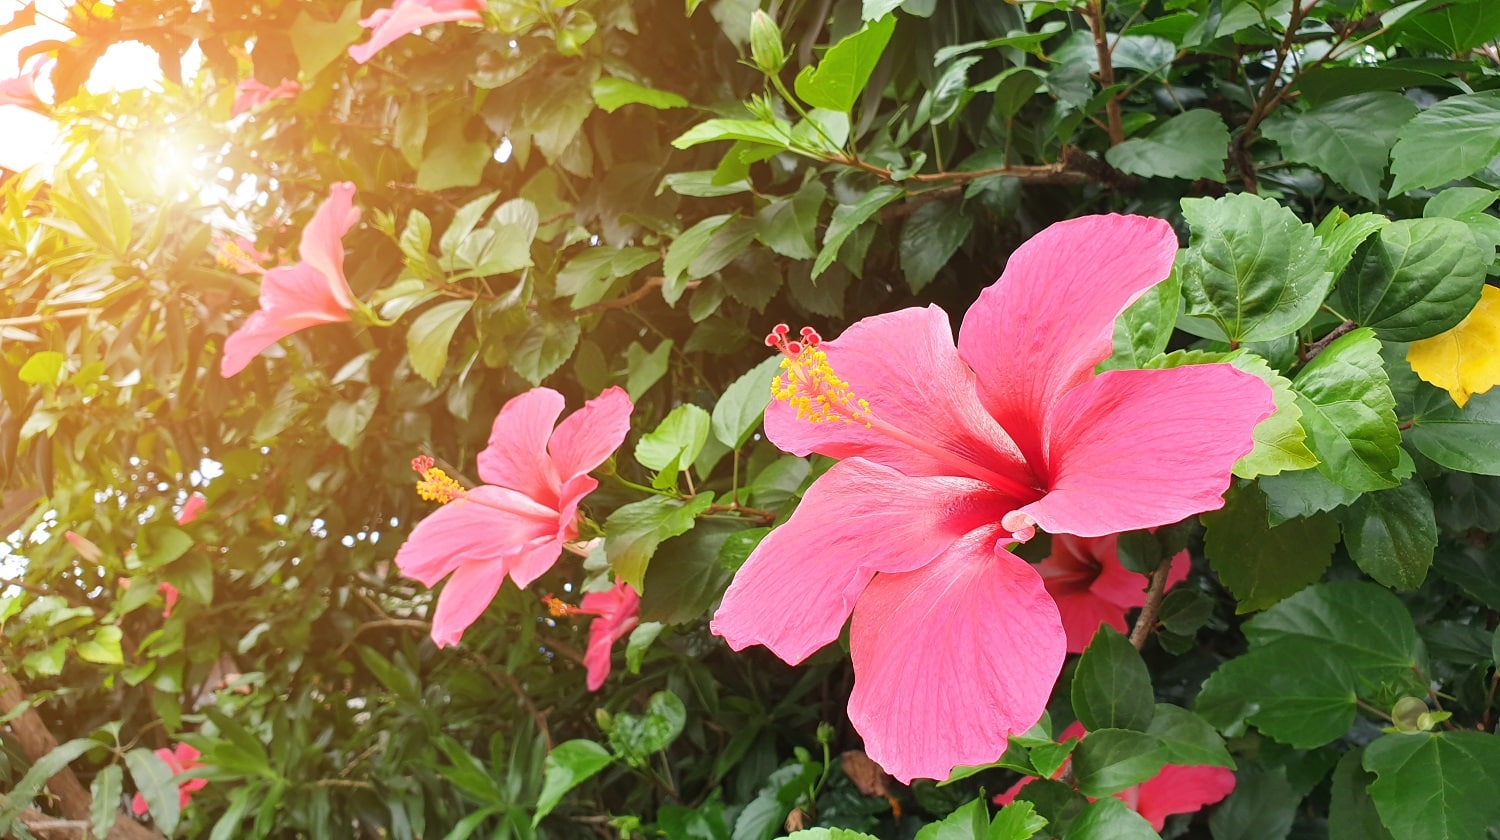 red hibiscus flower and green leaf in natural garden